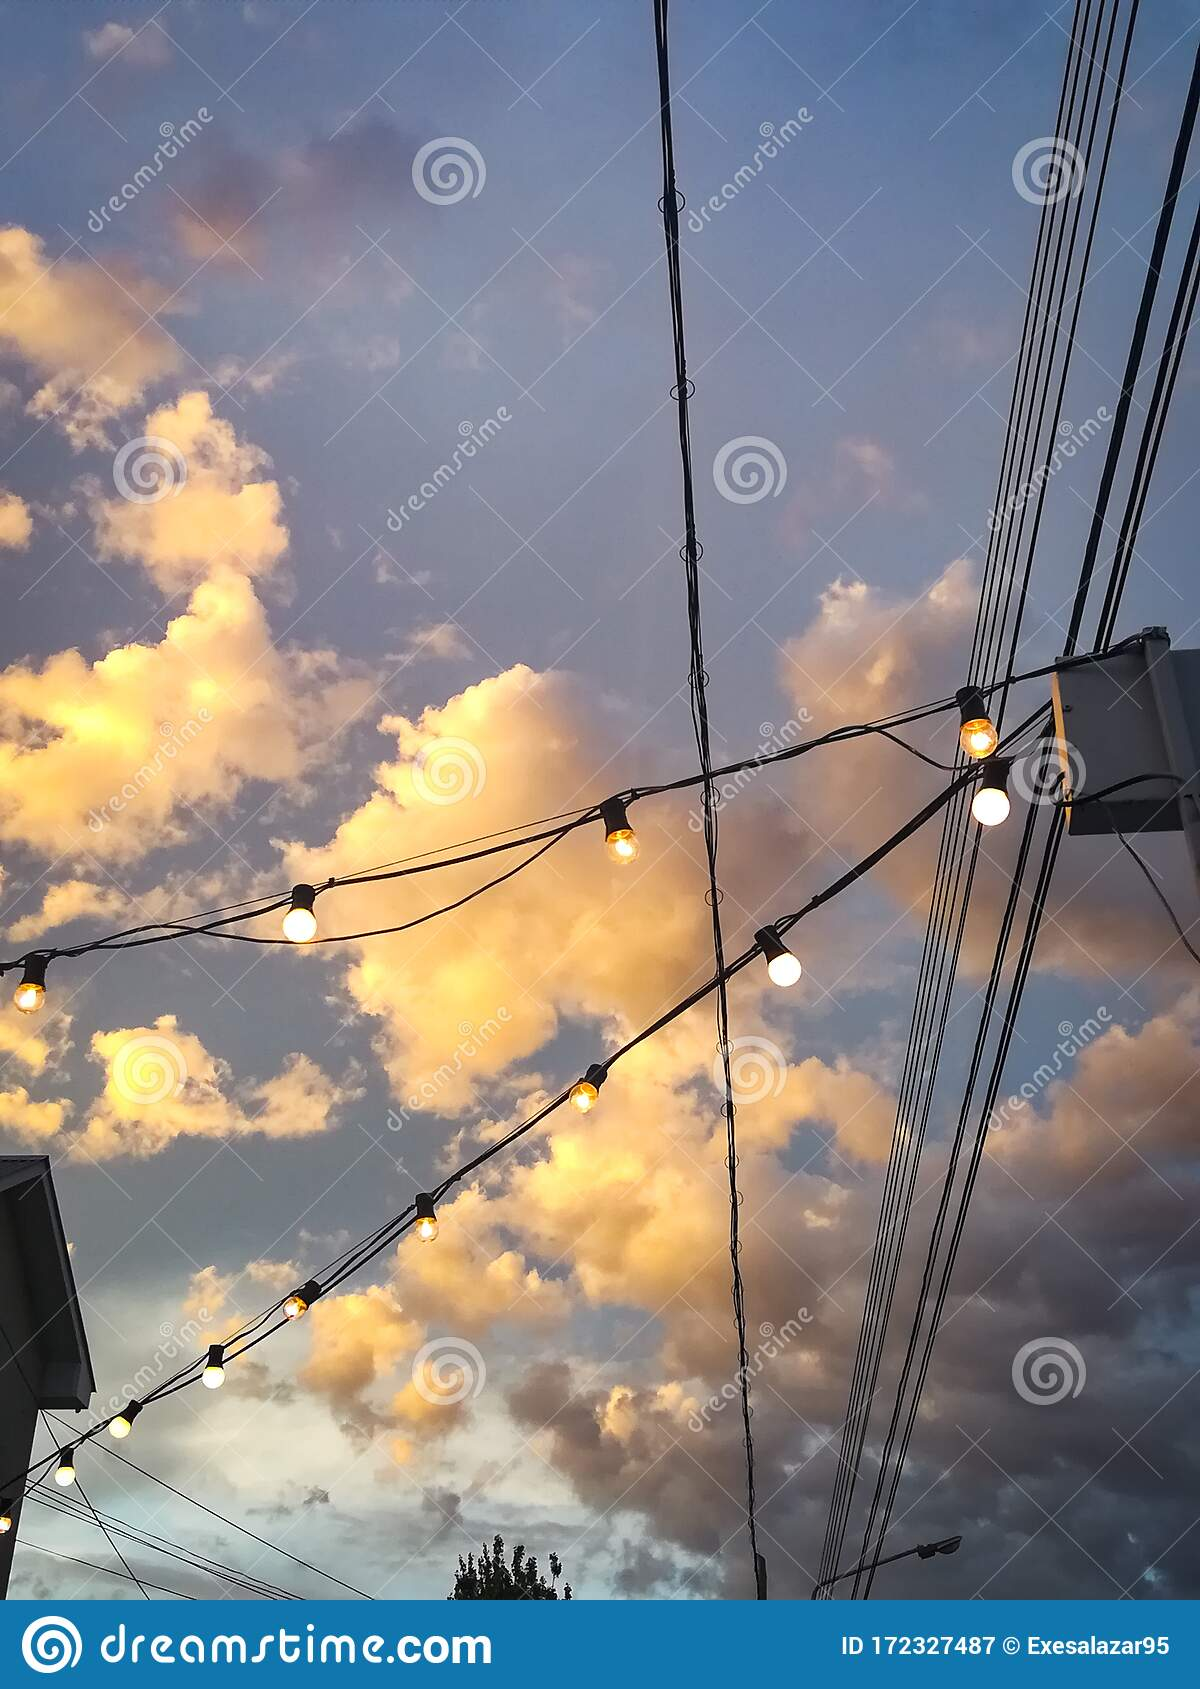 Blue Sky With Pink And Orange Clouds Aesthetic Tumblr Background Wallpaper With Fairy Lights Stock Image Image Of Christmas Decor 172327487